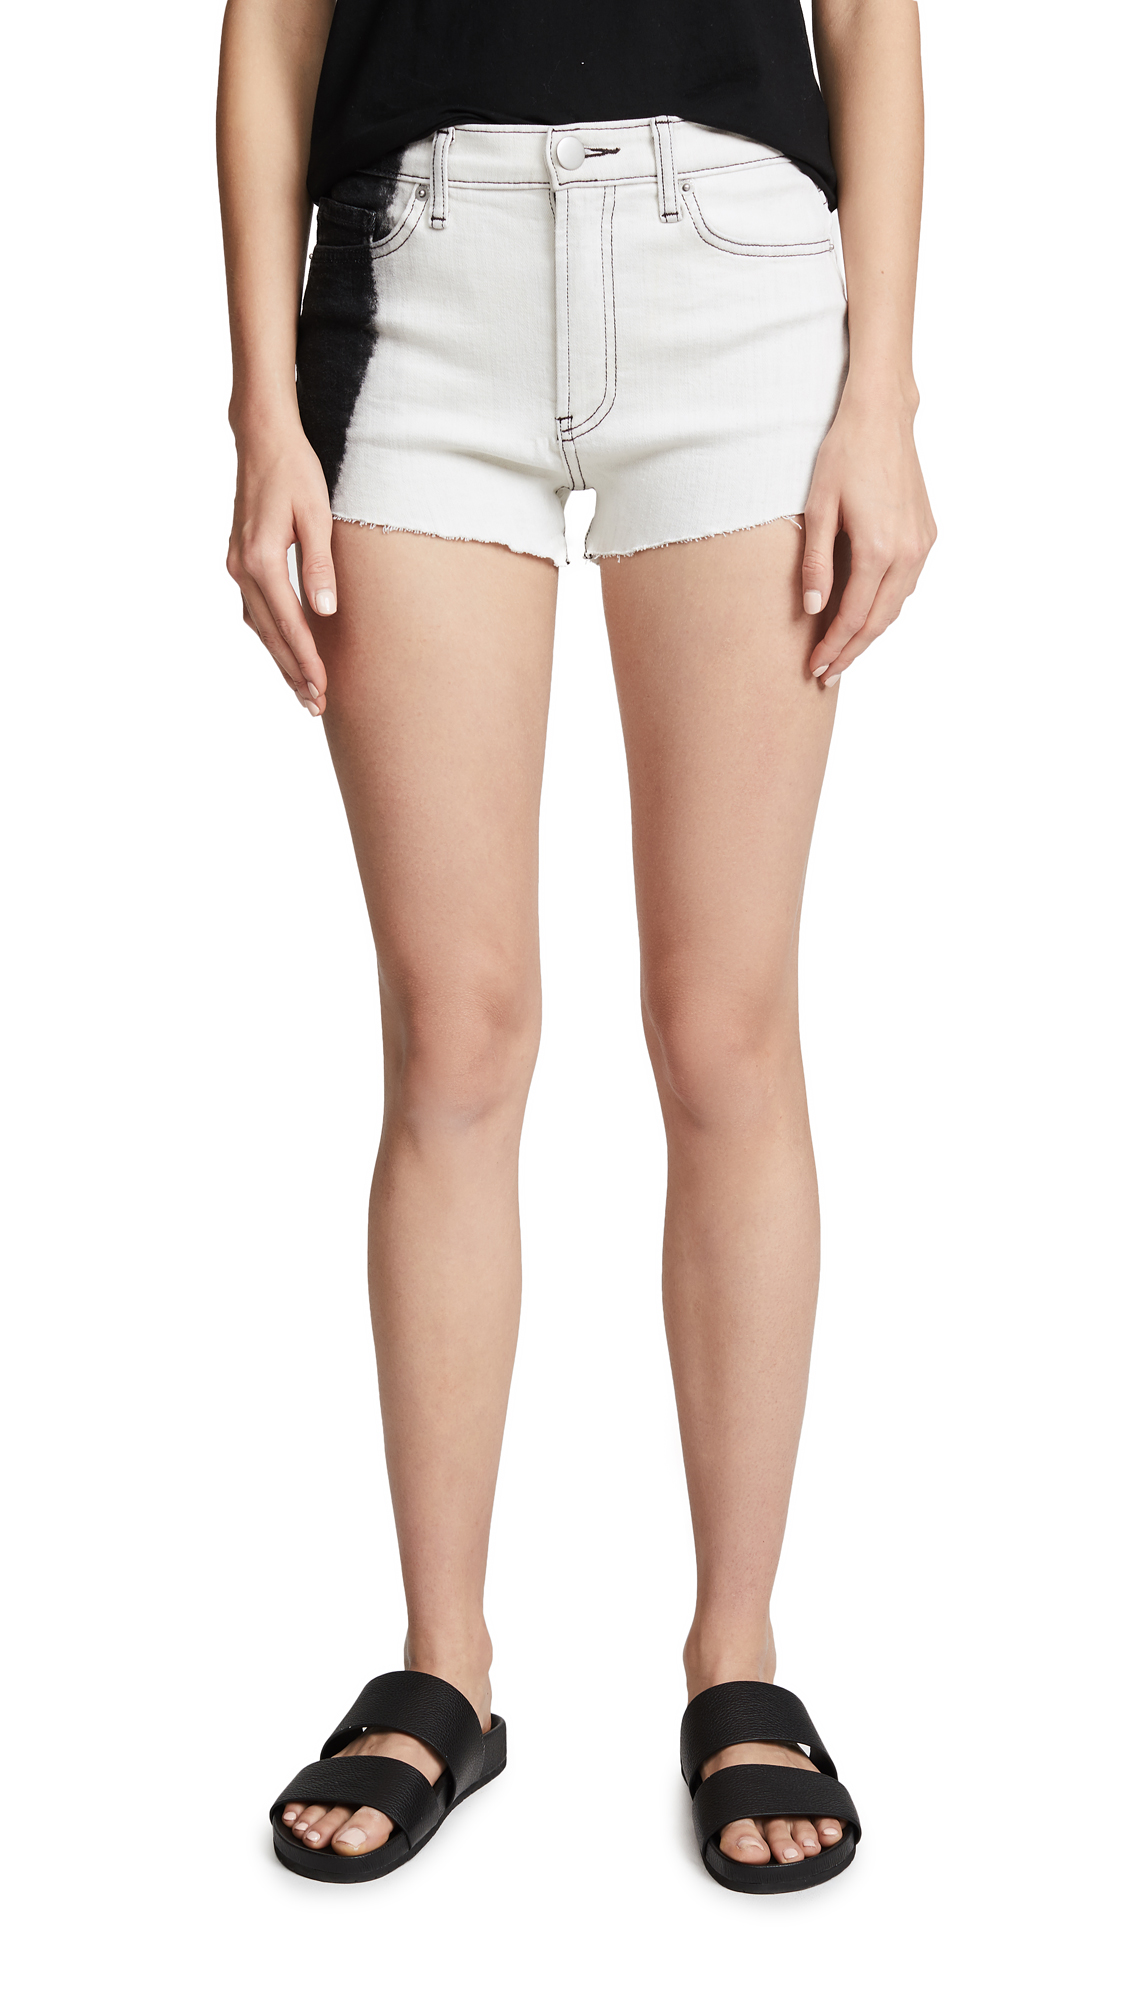 Hudson x Baja East Zooey High Rise Shorts In Black/White